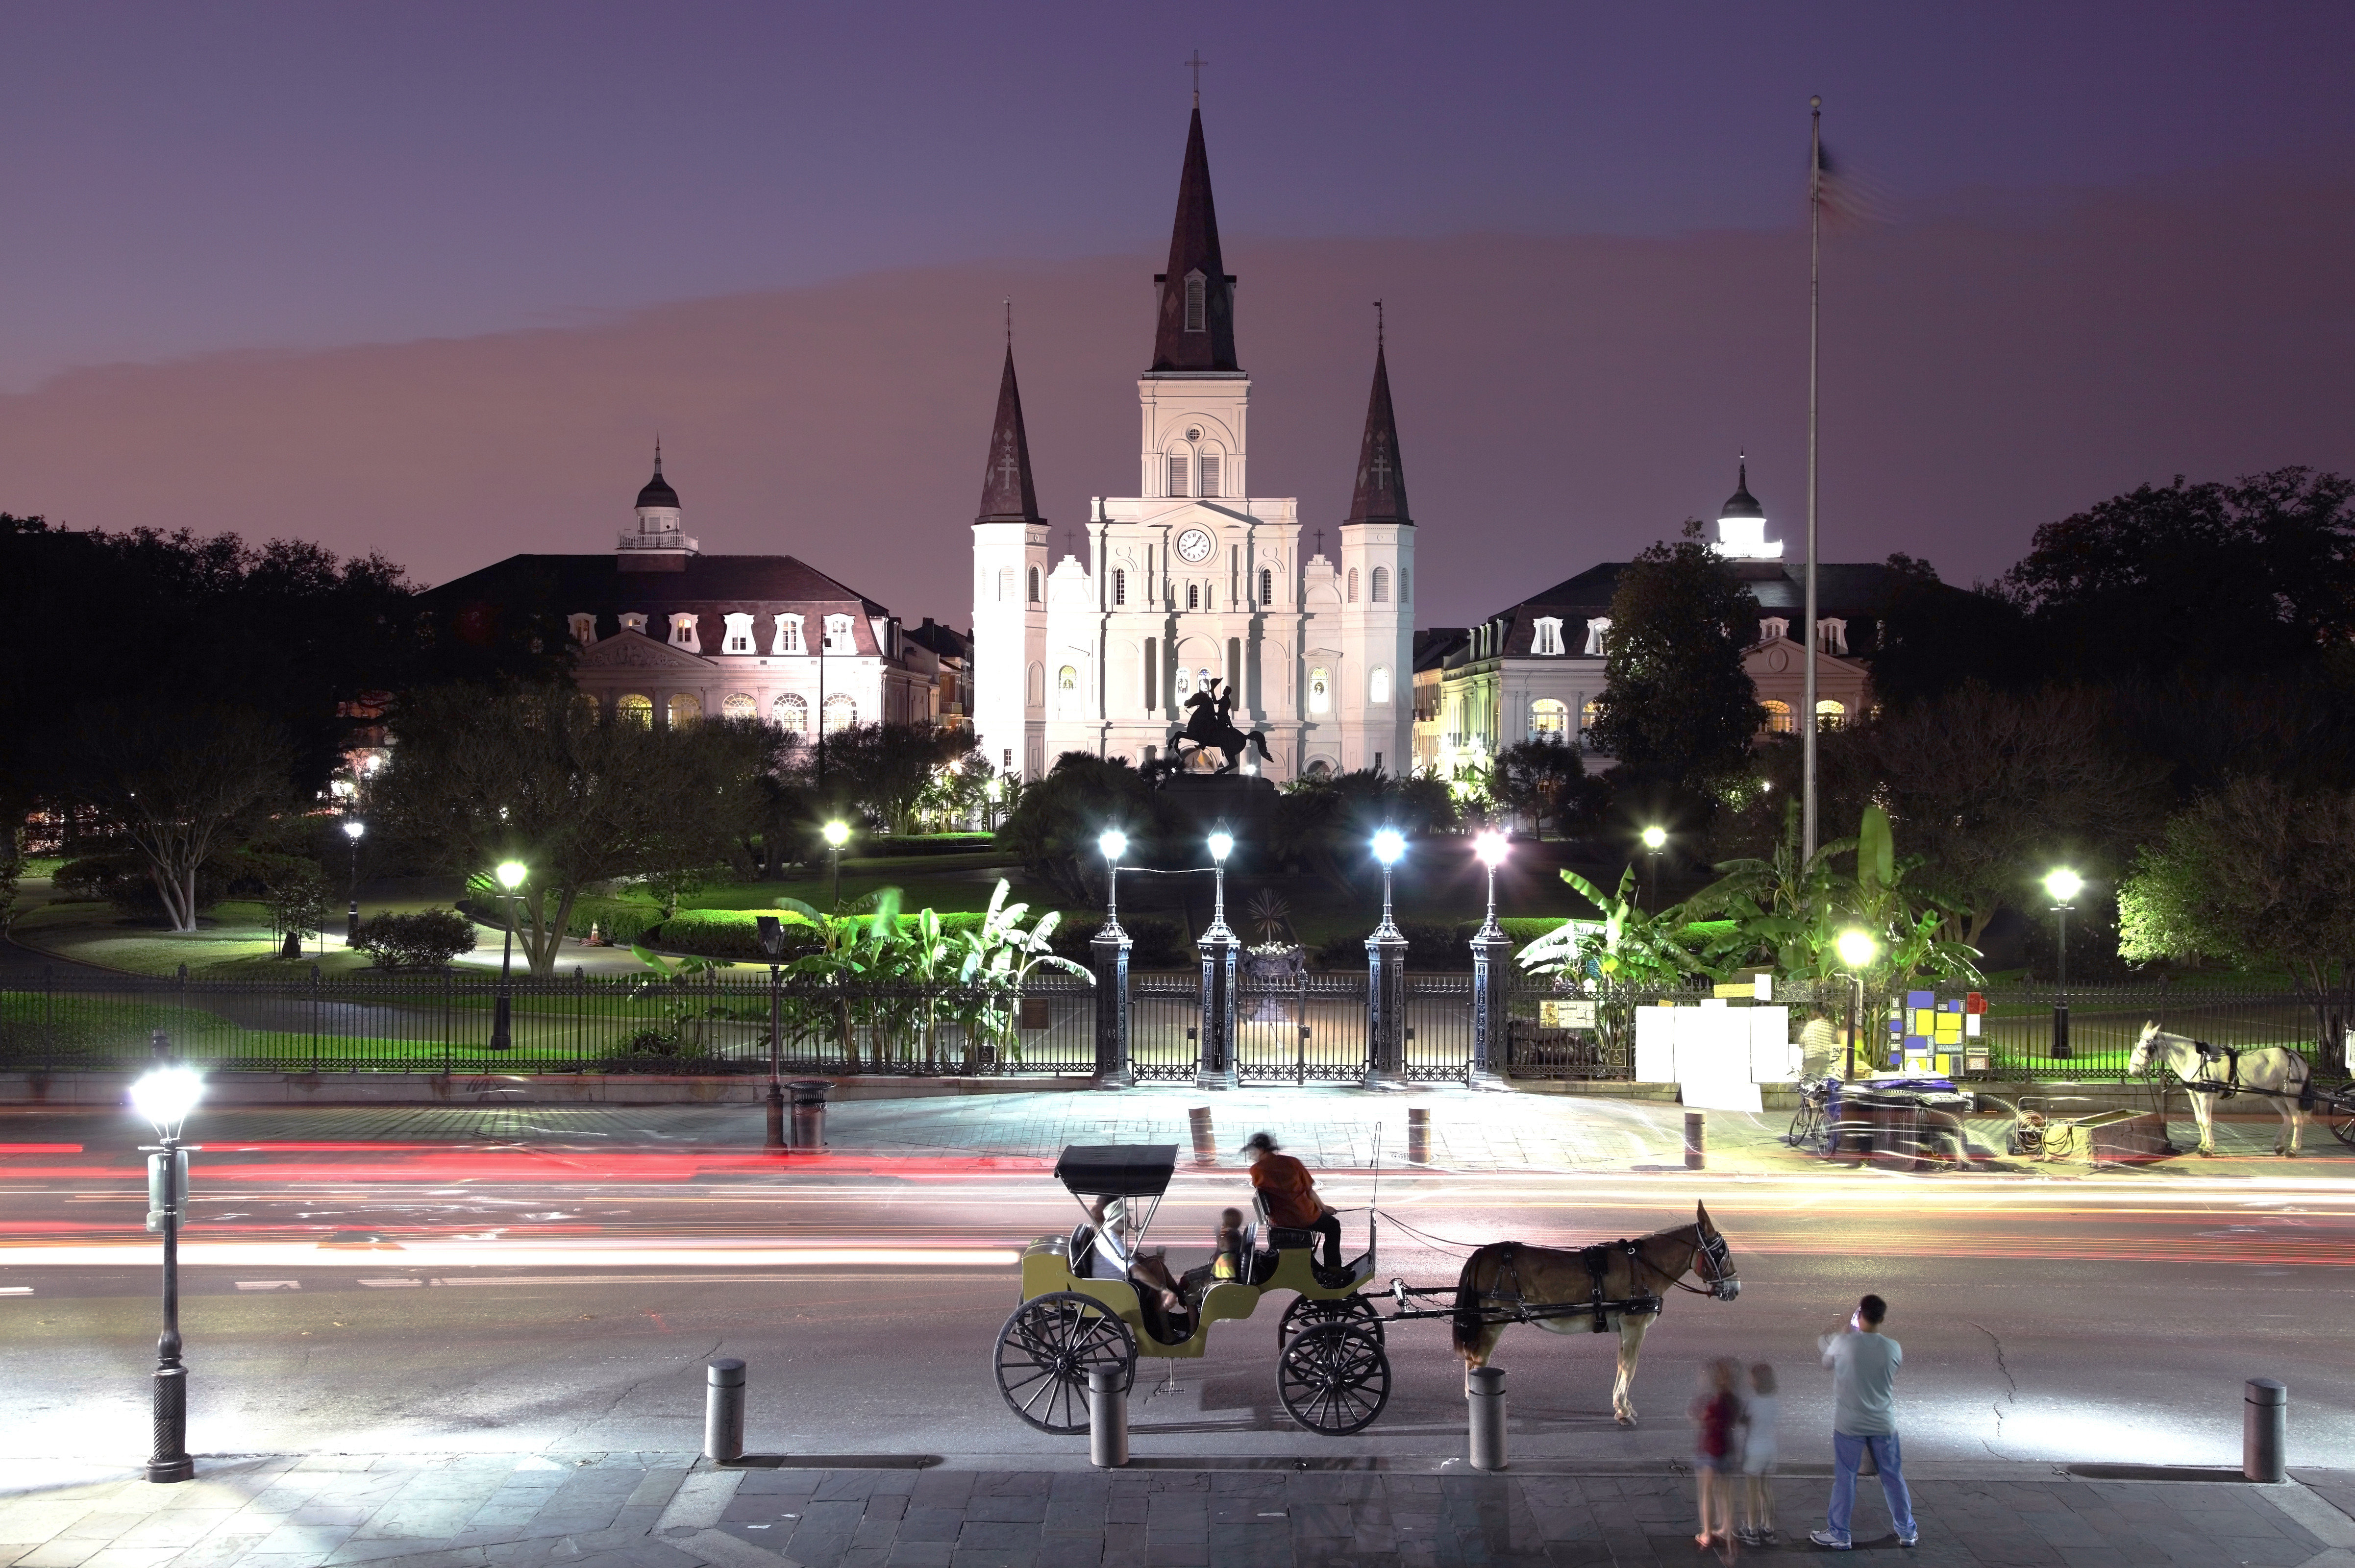 Business City Cultural Drink Landmarks Monuments Nightlife sky road plaza landmark town square night Town street evening cityscape Downtown place of worship Church